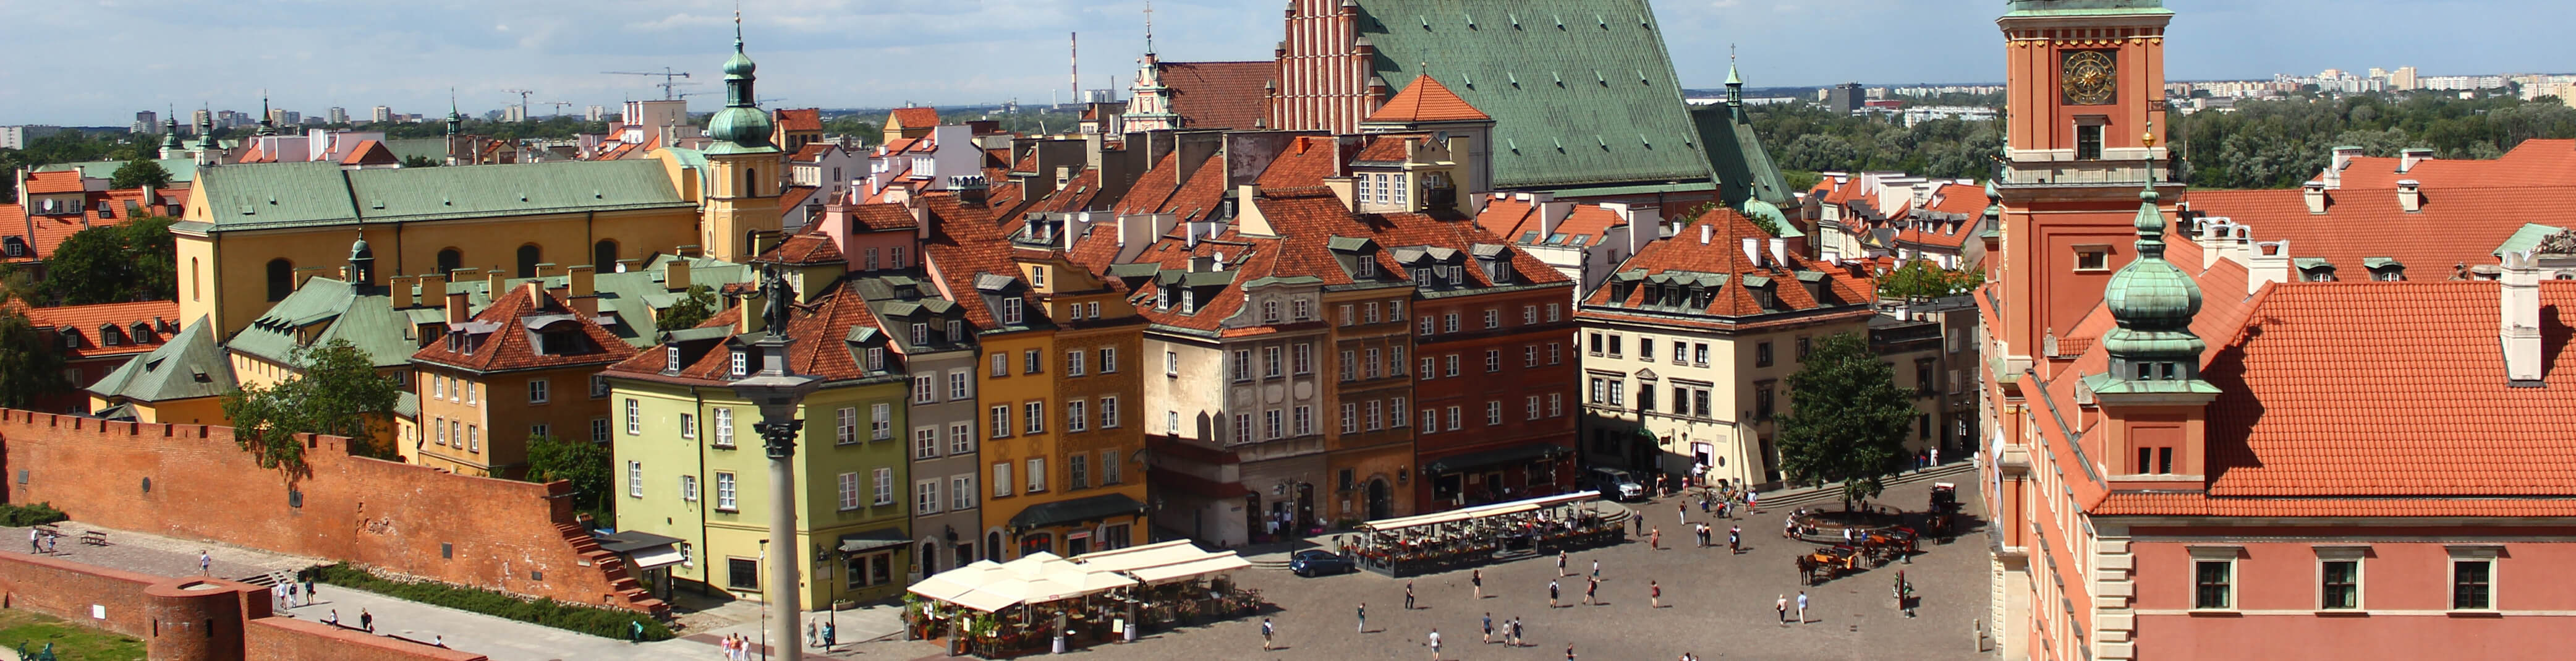 Online Training Courses In Warsaw